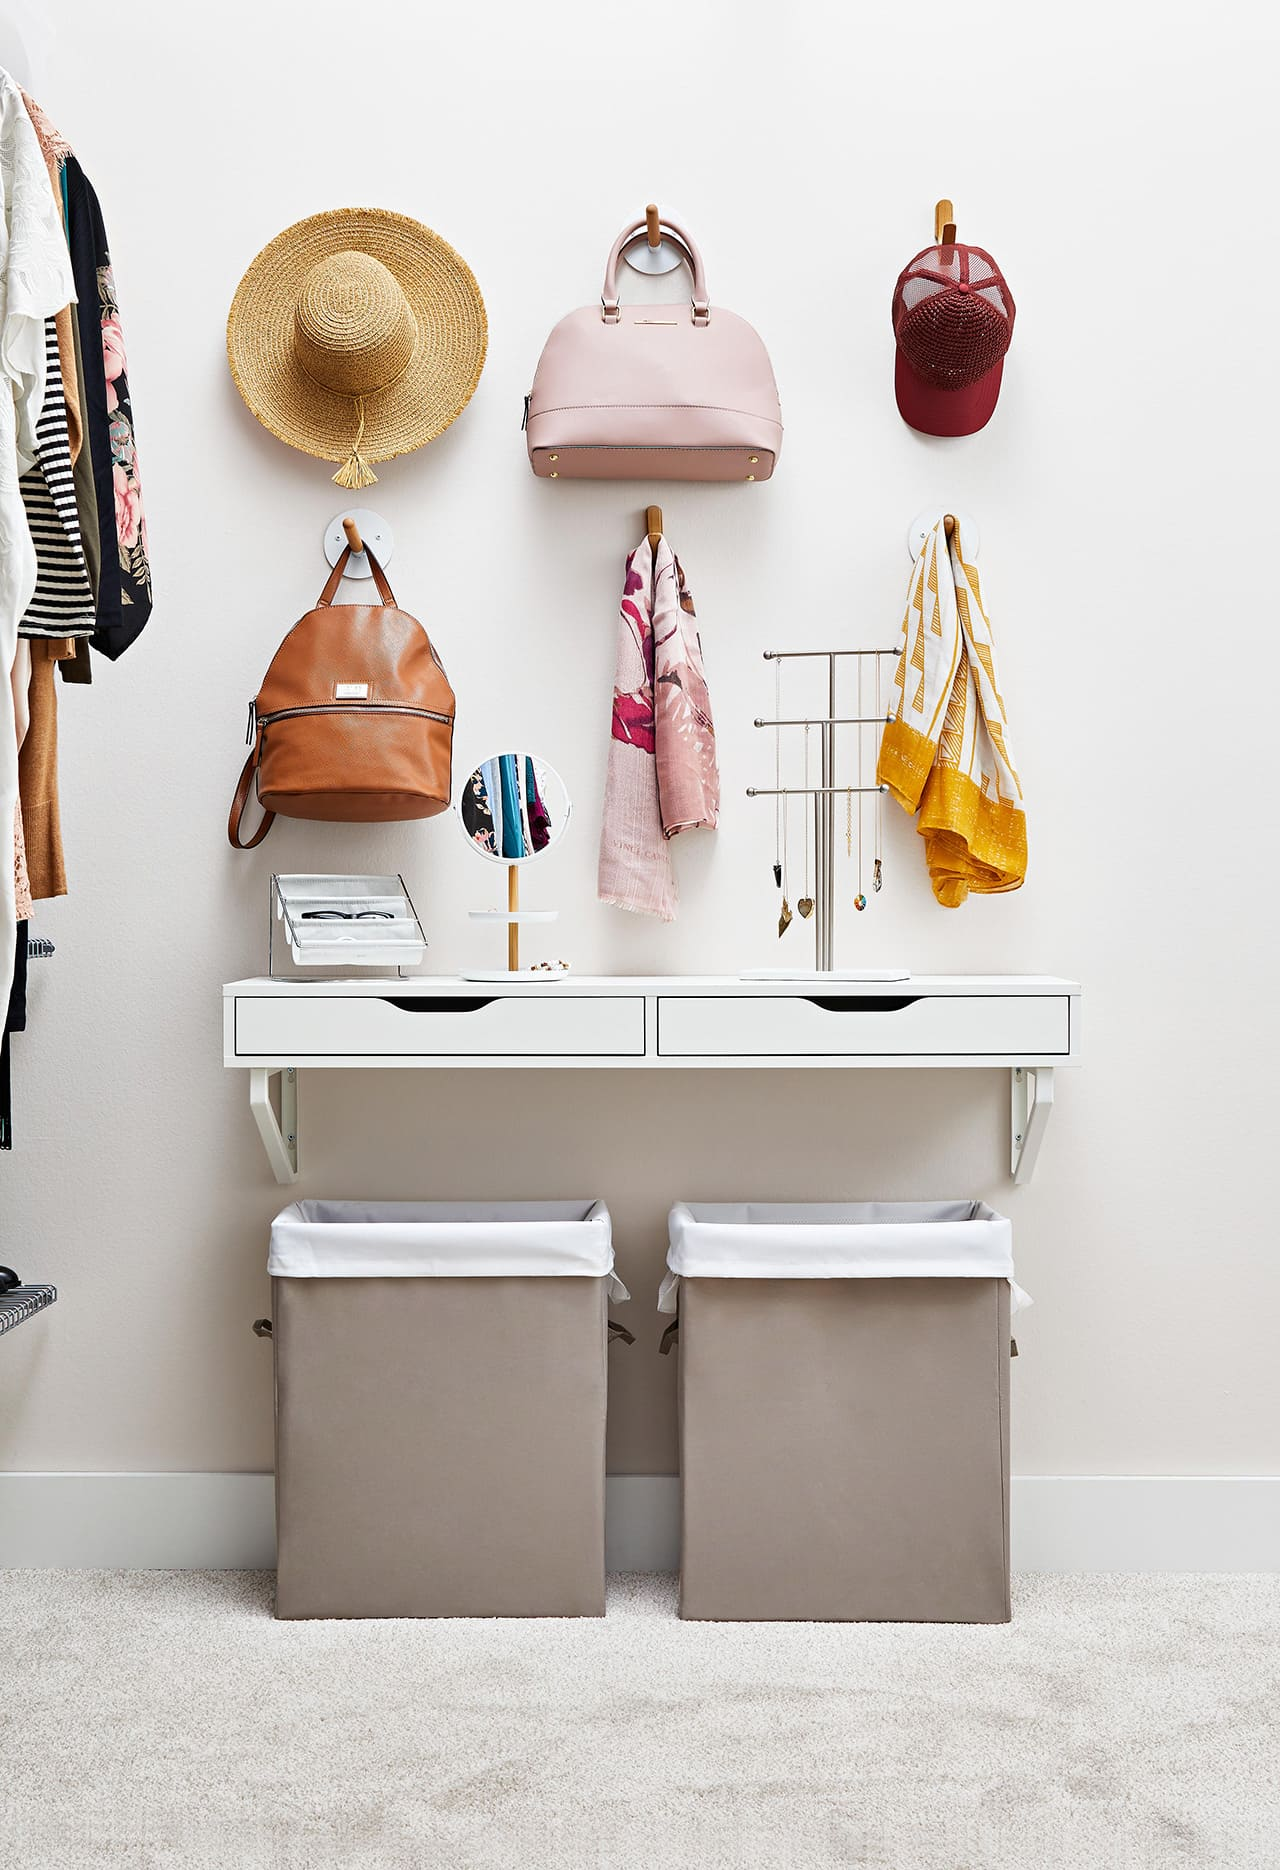 2.Simphome.com Spruce Up the Wall of Your Walk in Closet